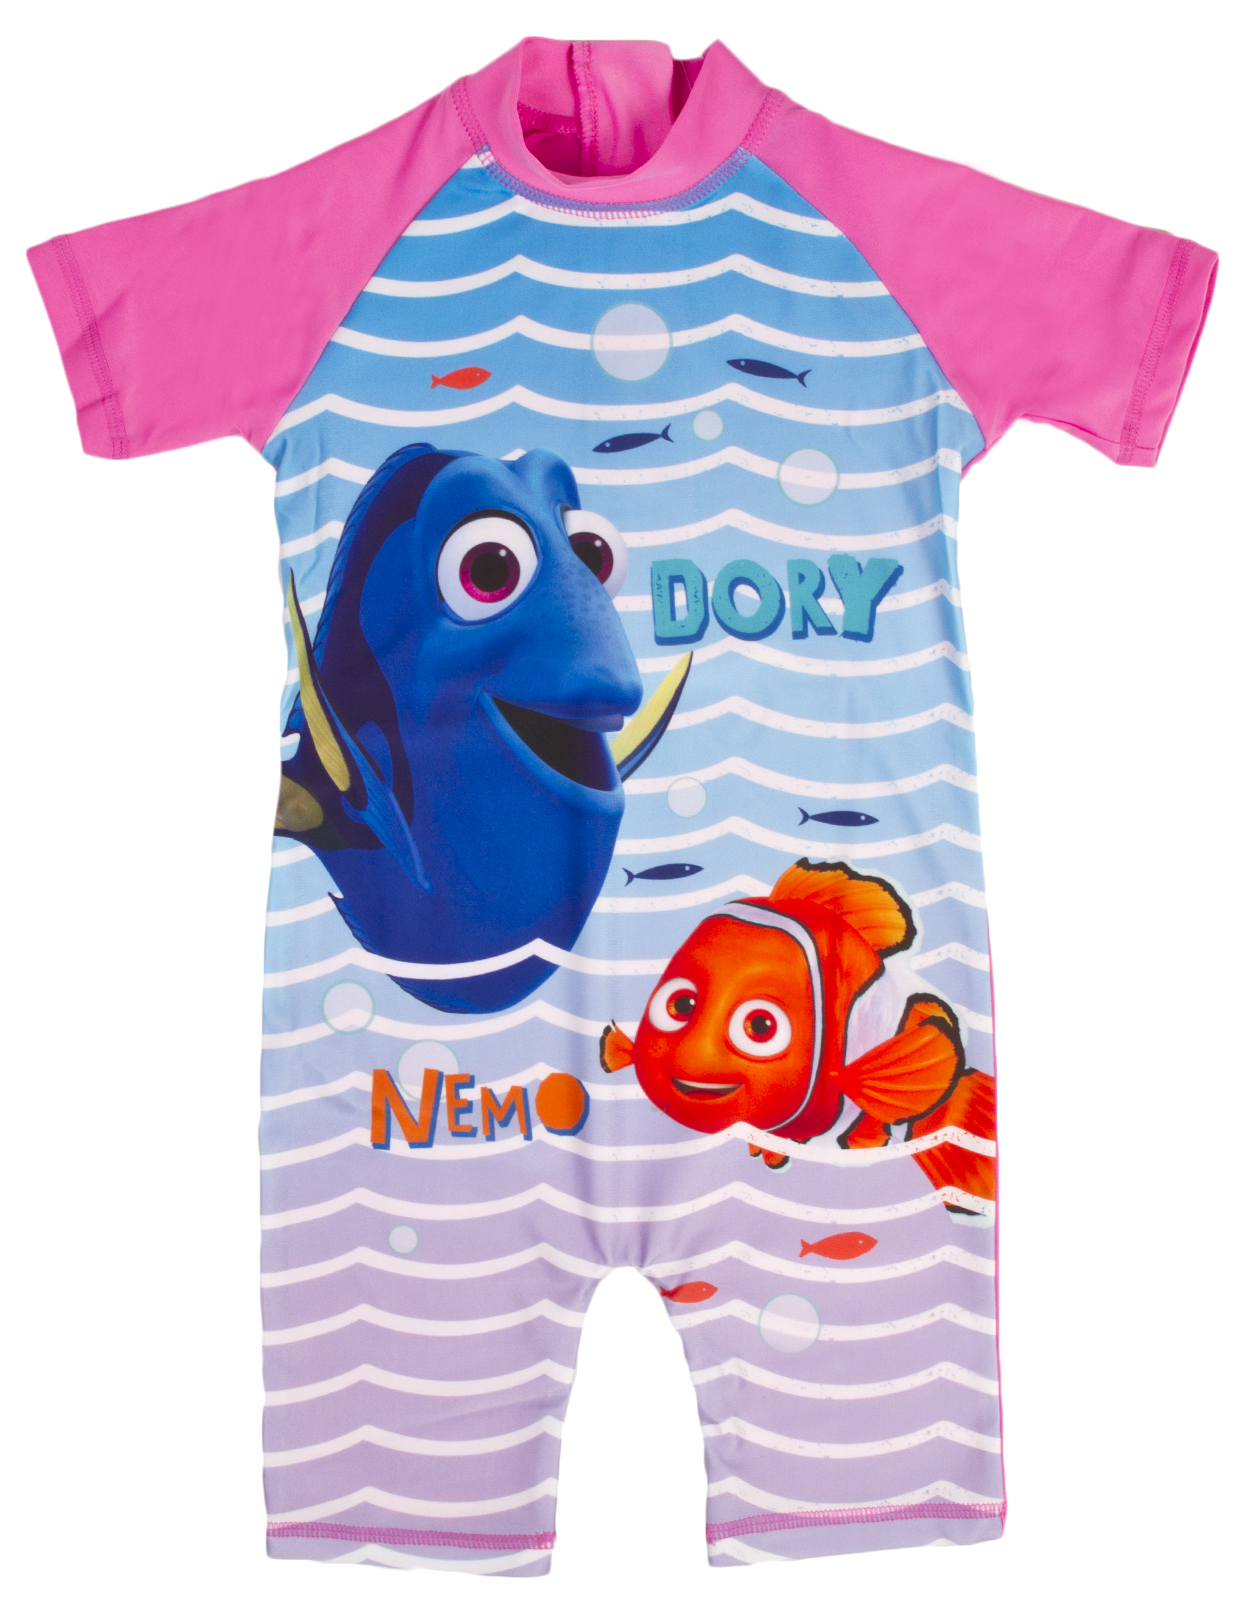 Platypus Australia is a leading UV Swimwear brand, offering a selection of high quality sun protective swimwear for babies, girls and boys, ranging from sizes 0 to